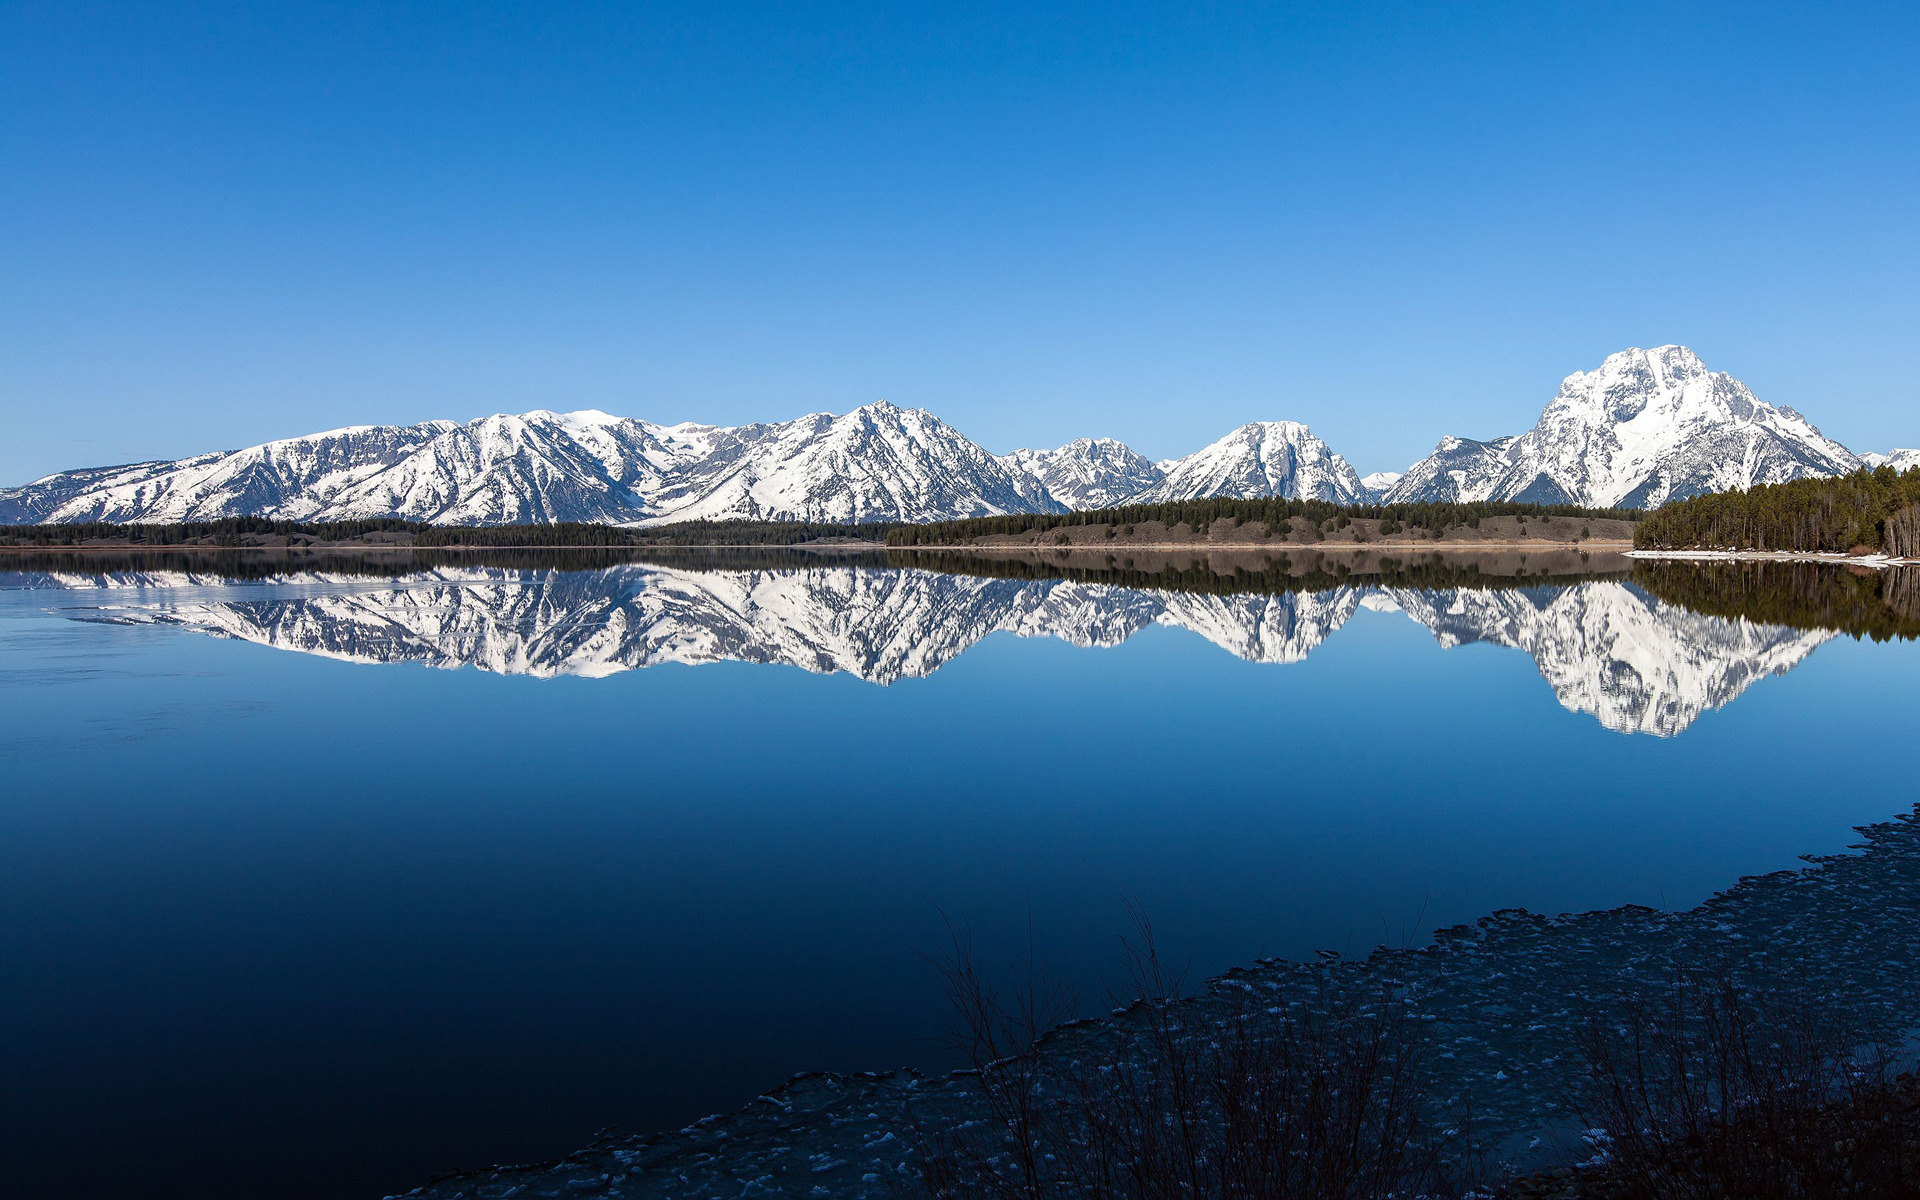 White mountains reflecting in the lake